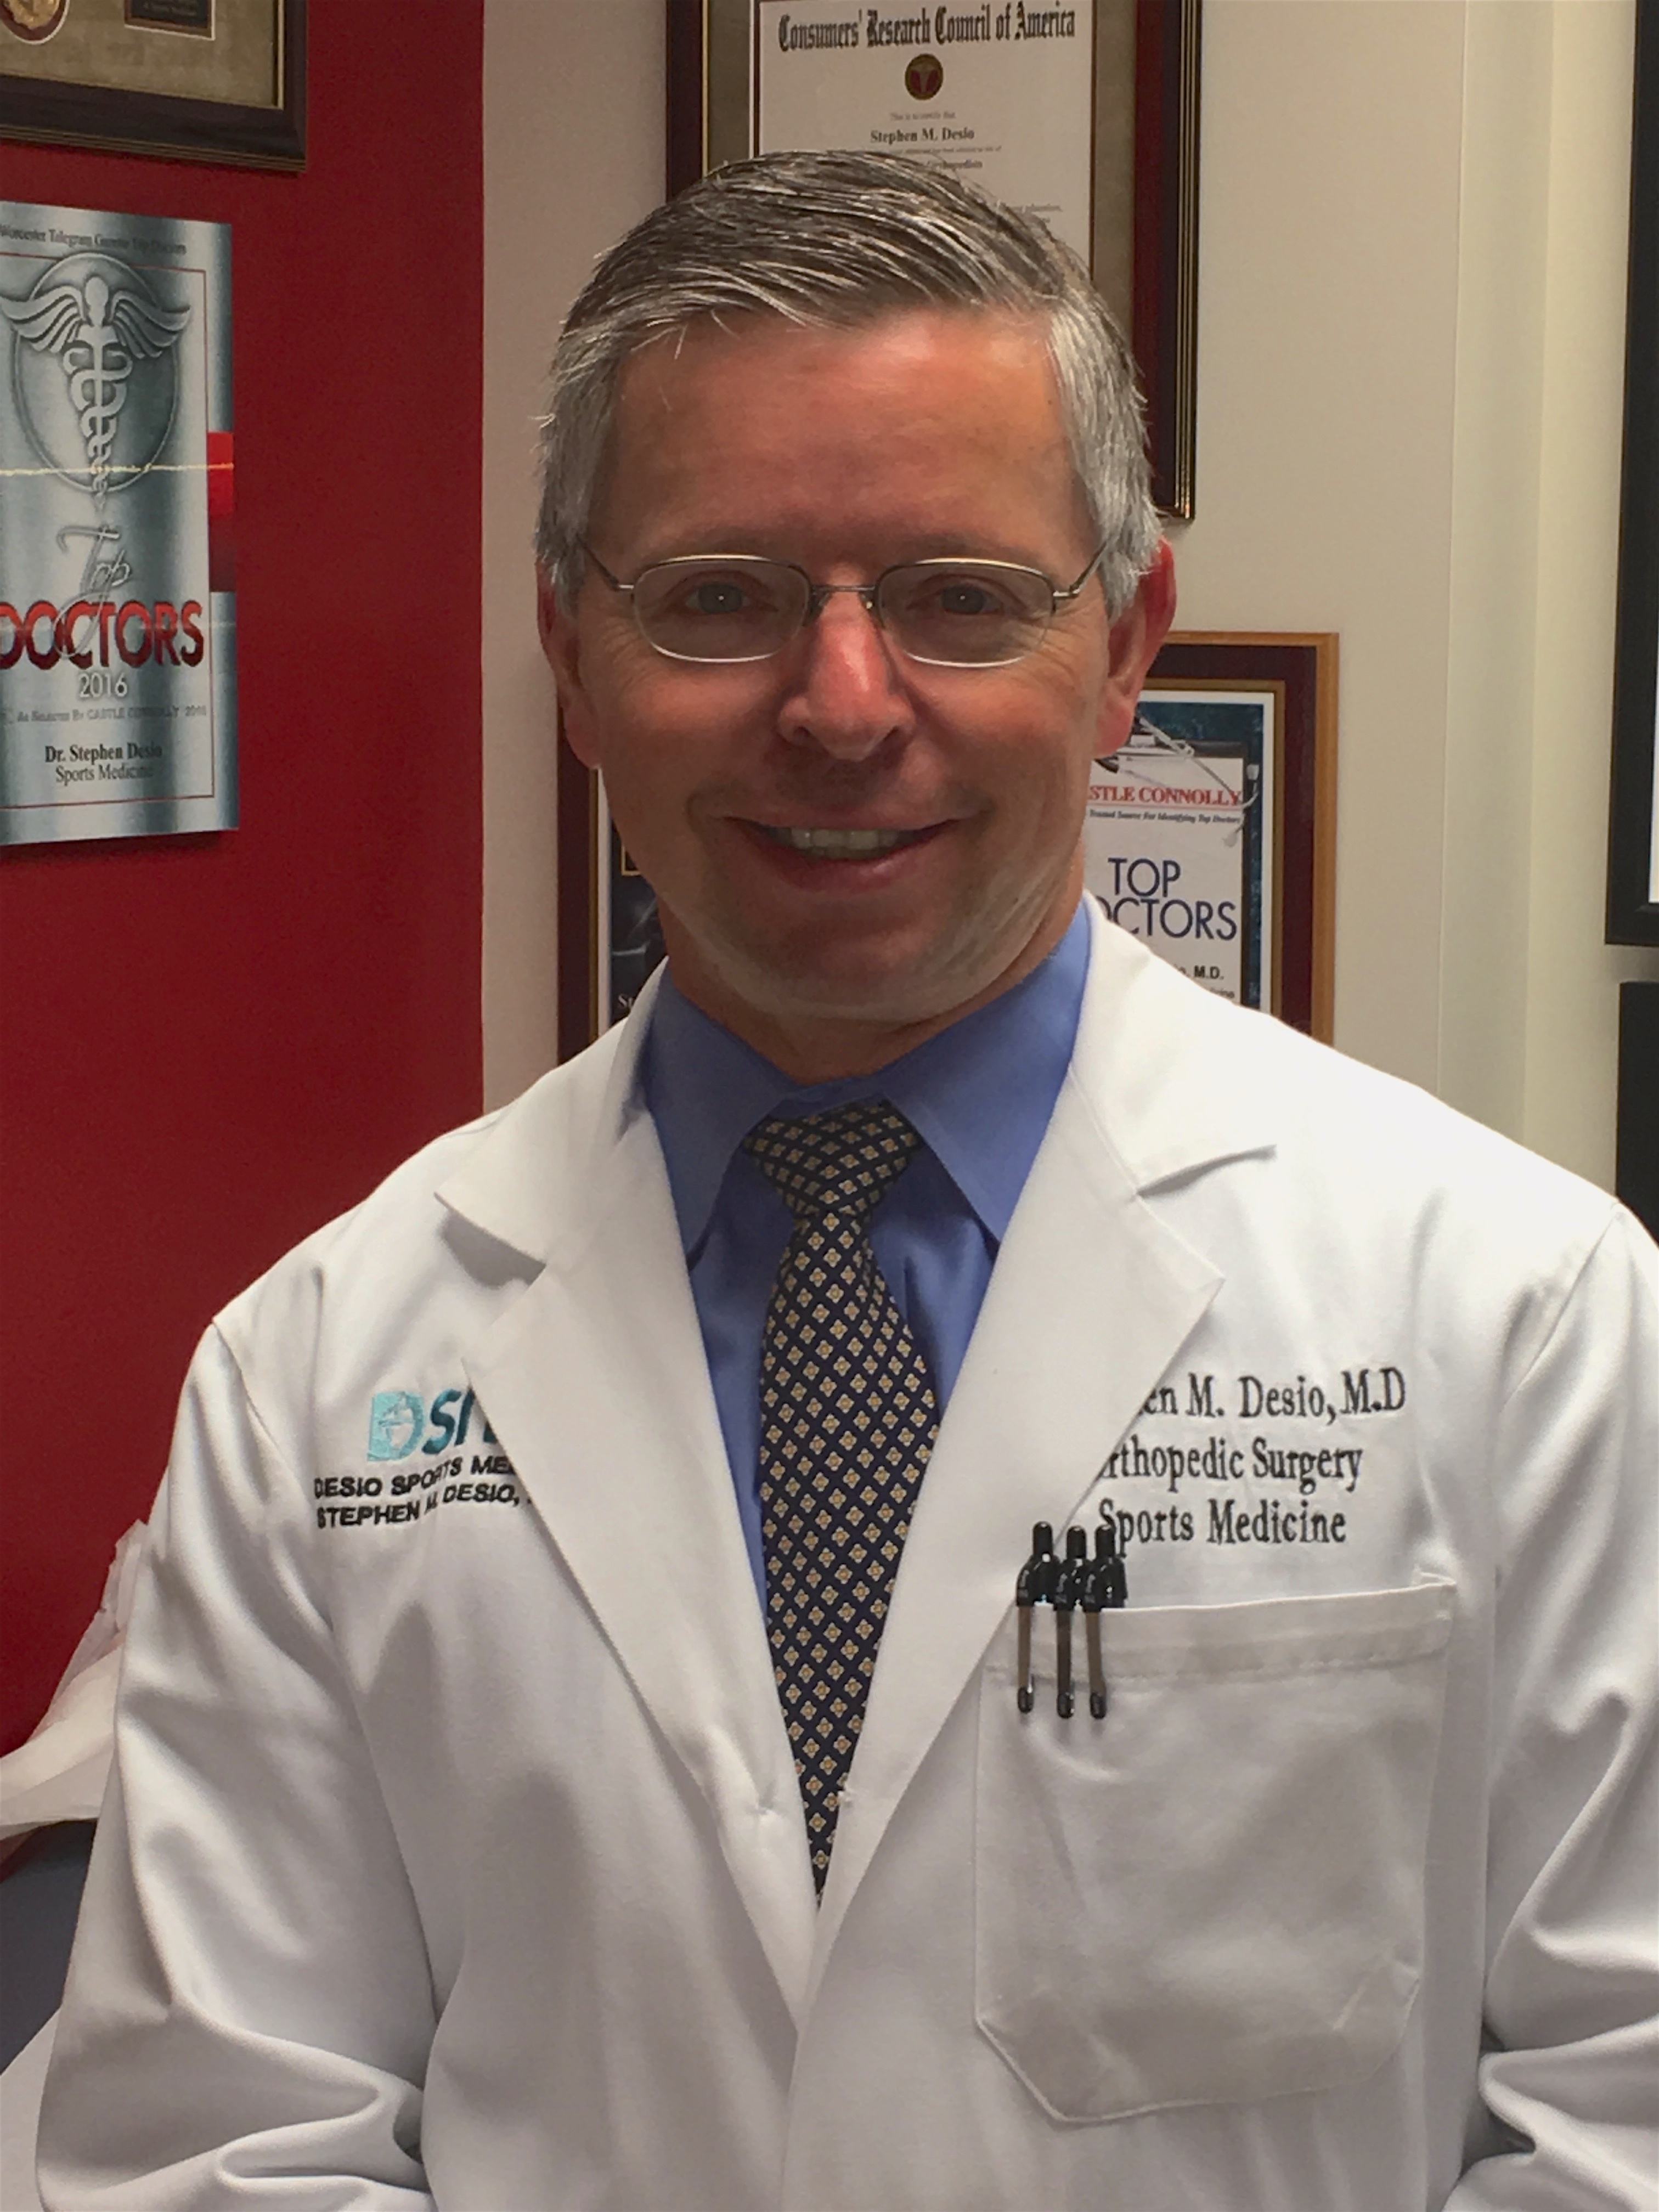 Orthopedic Surgeon Dr Stephen M Desio Md Worcester